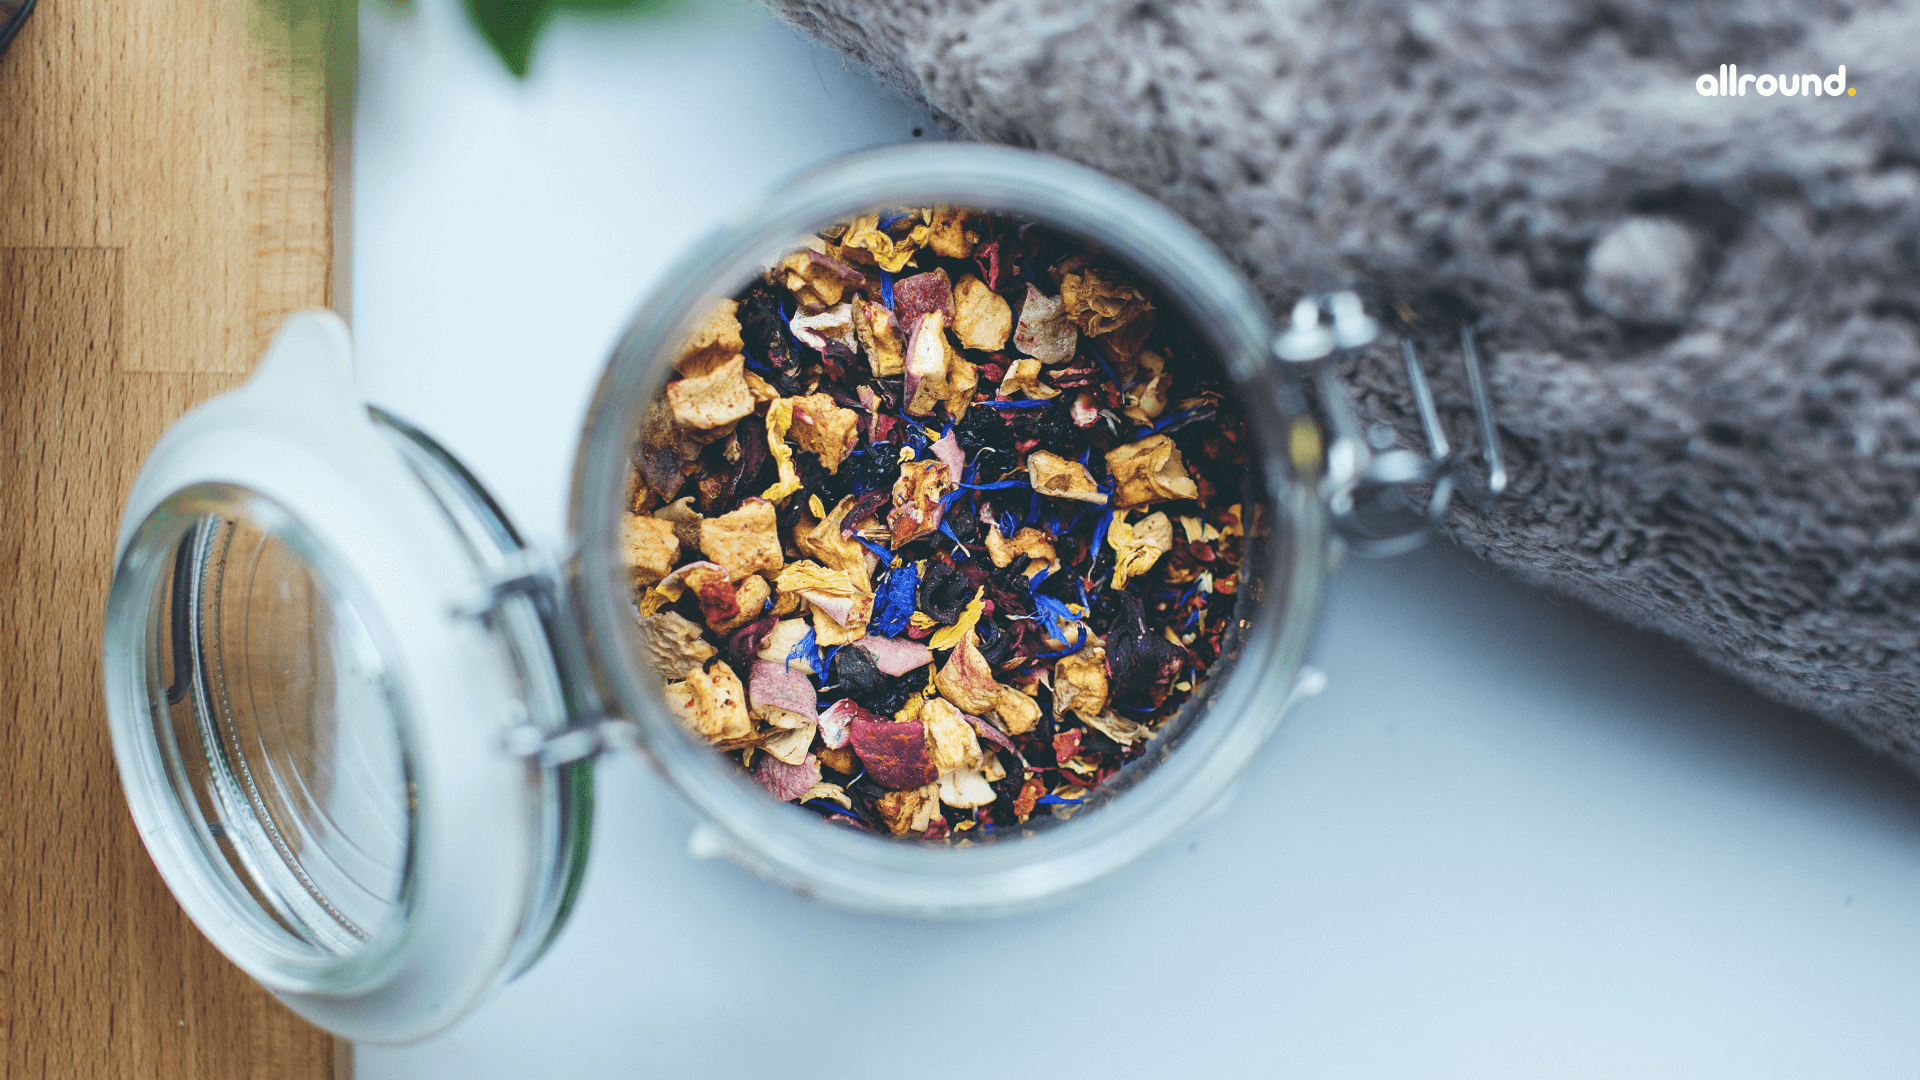 POTPOURRI MAKING WITH KIDS